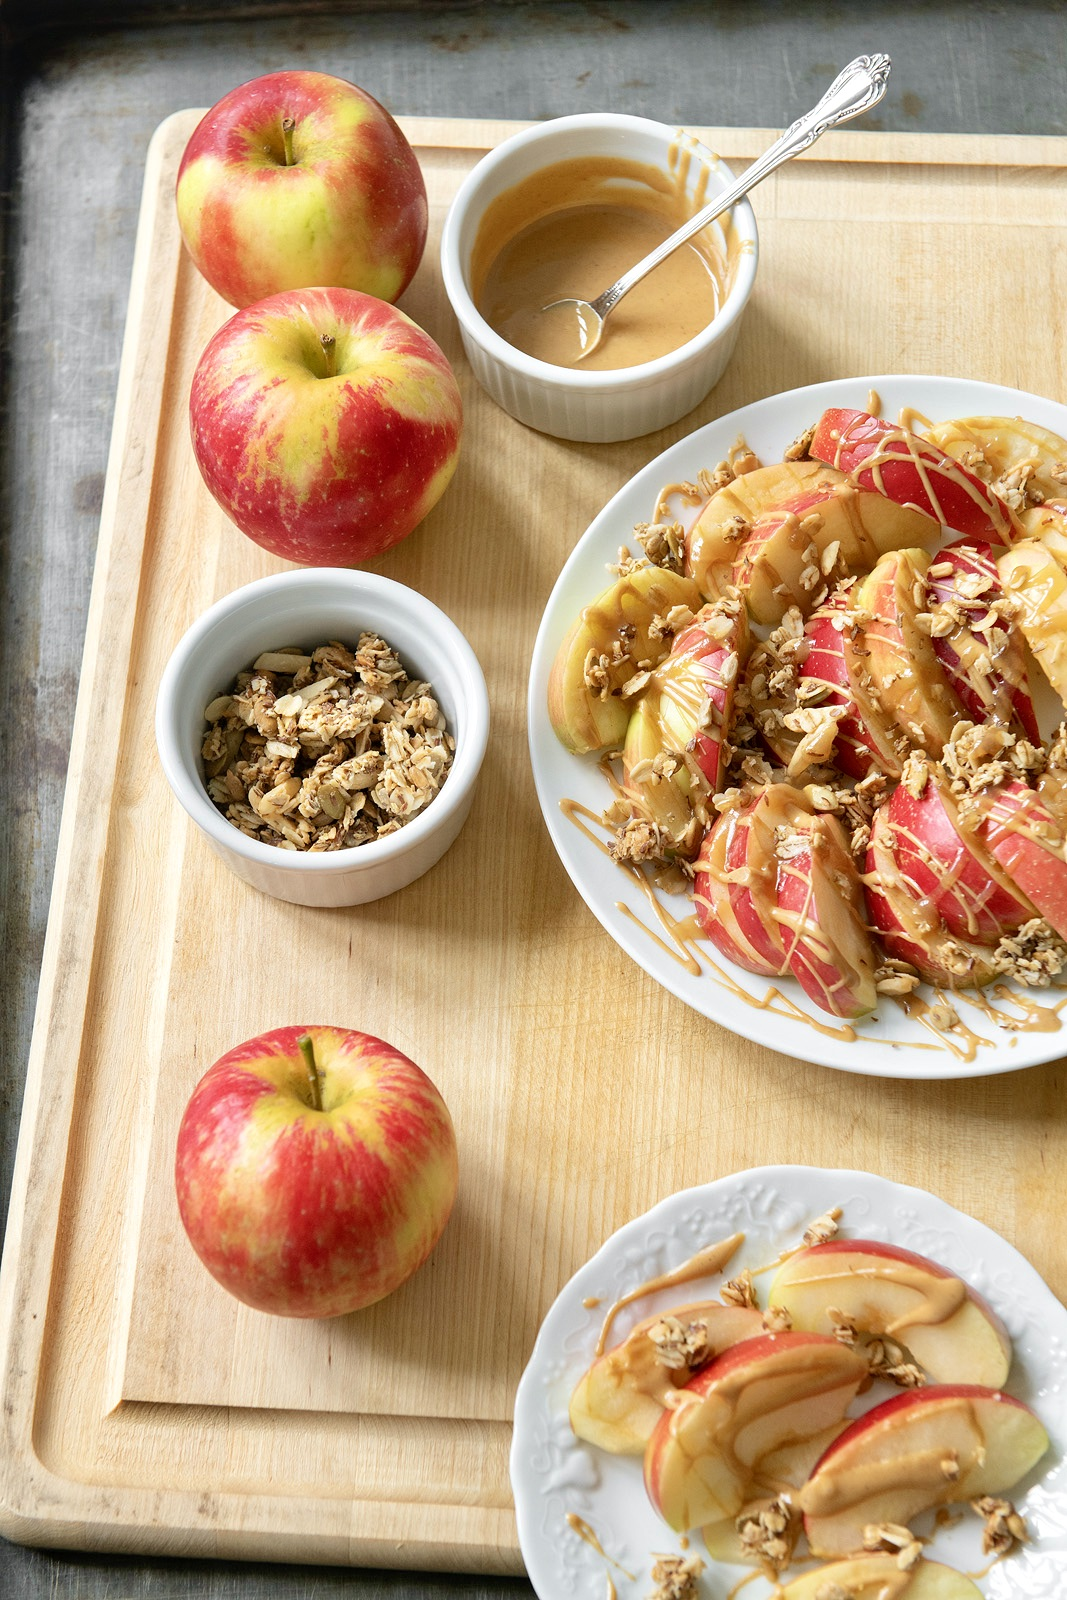 This fun twist on nachos delivers the flavor and crunch of a caramel apple, but in finger-food form. A hit with adults and kids alike!